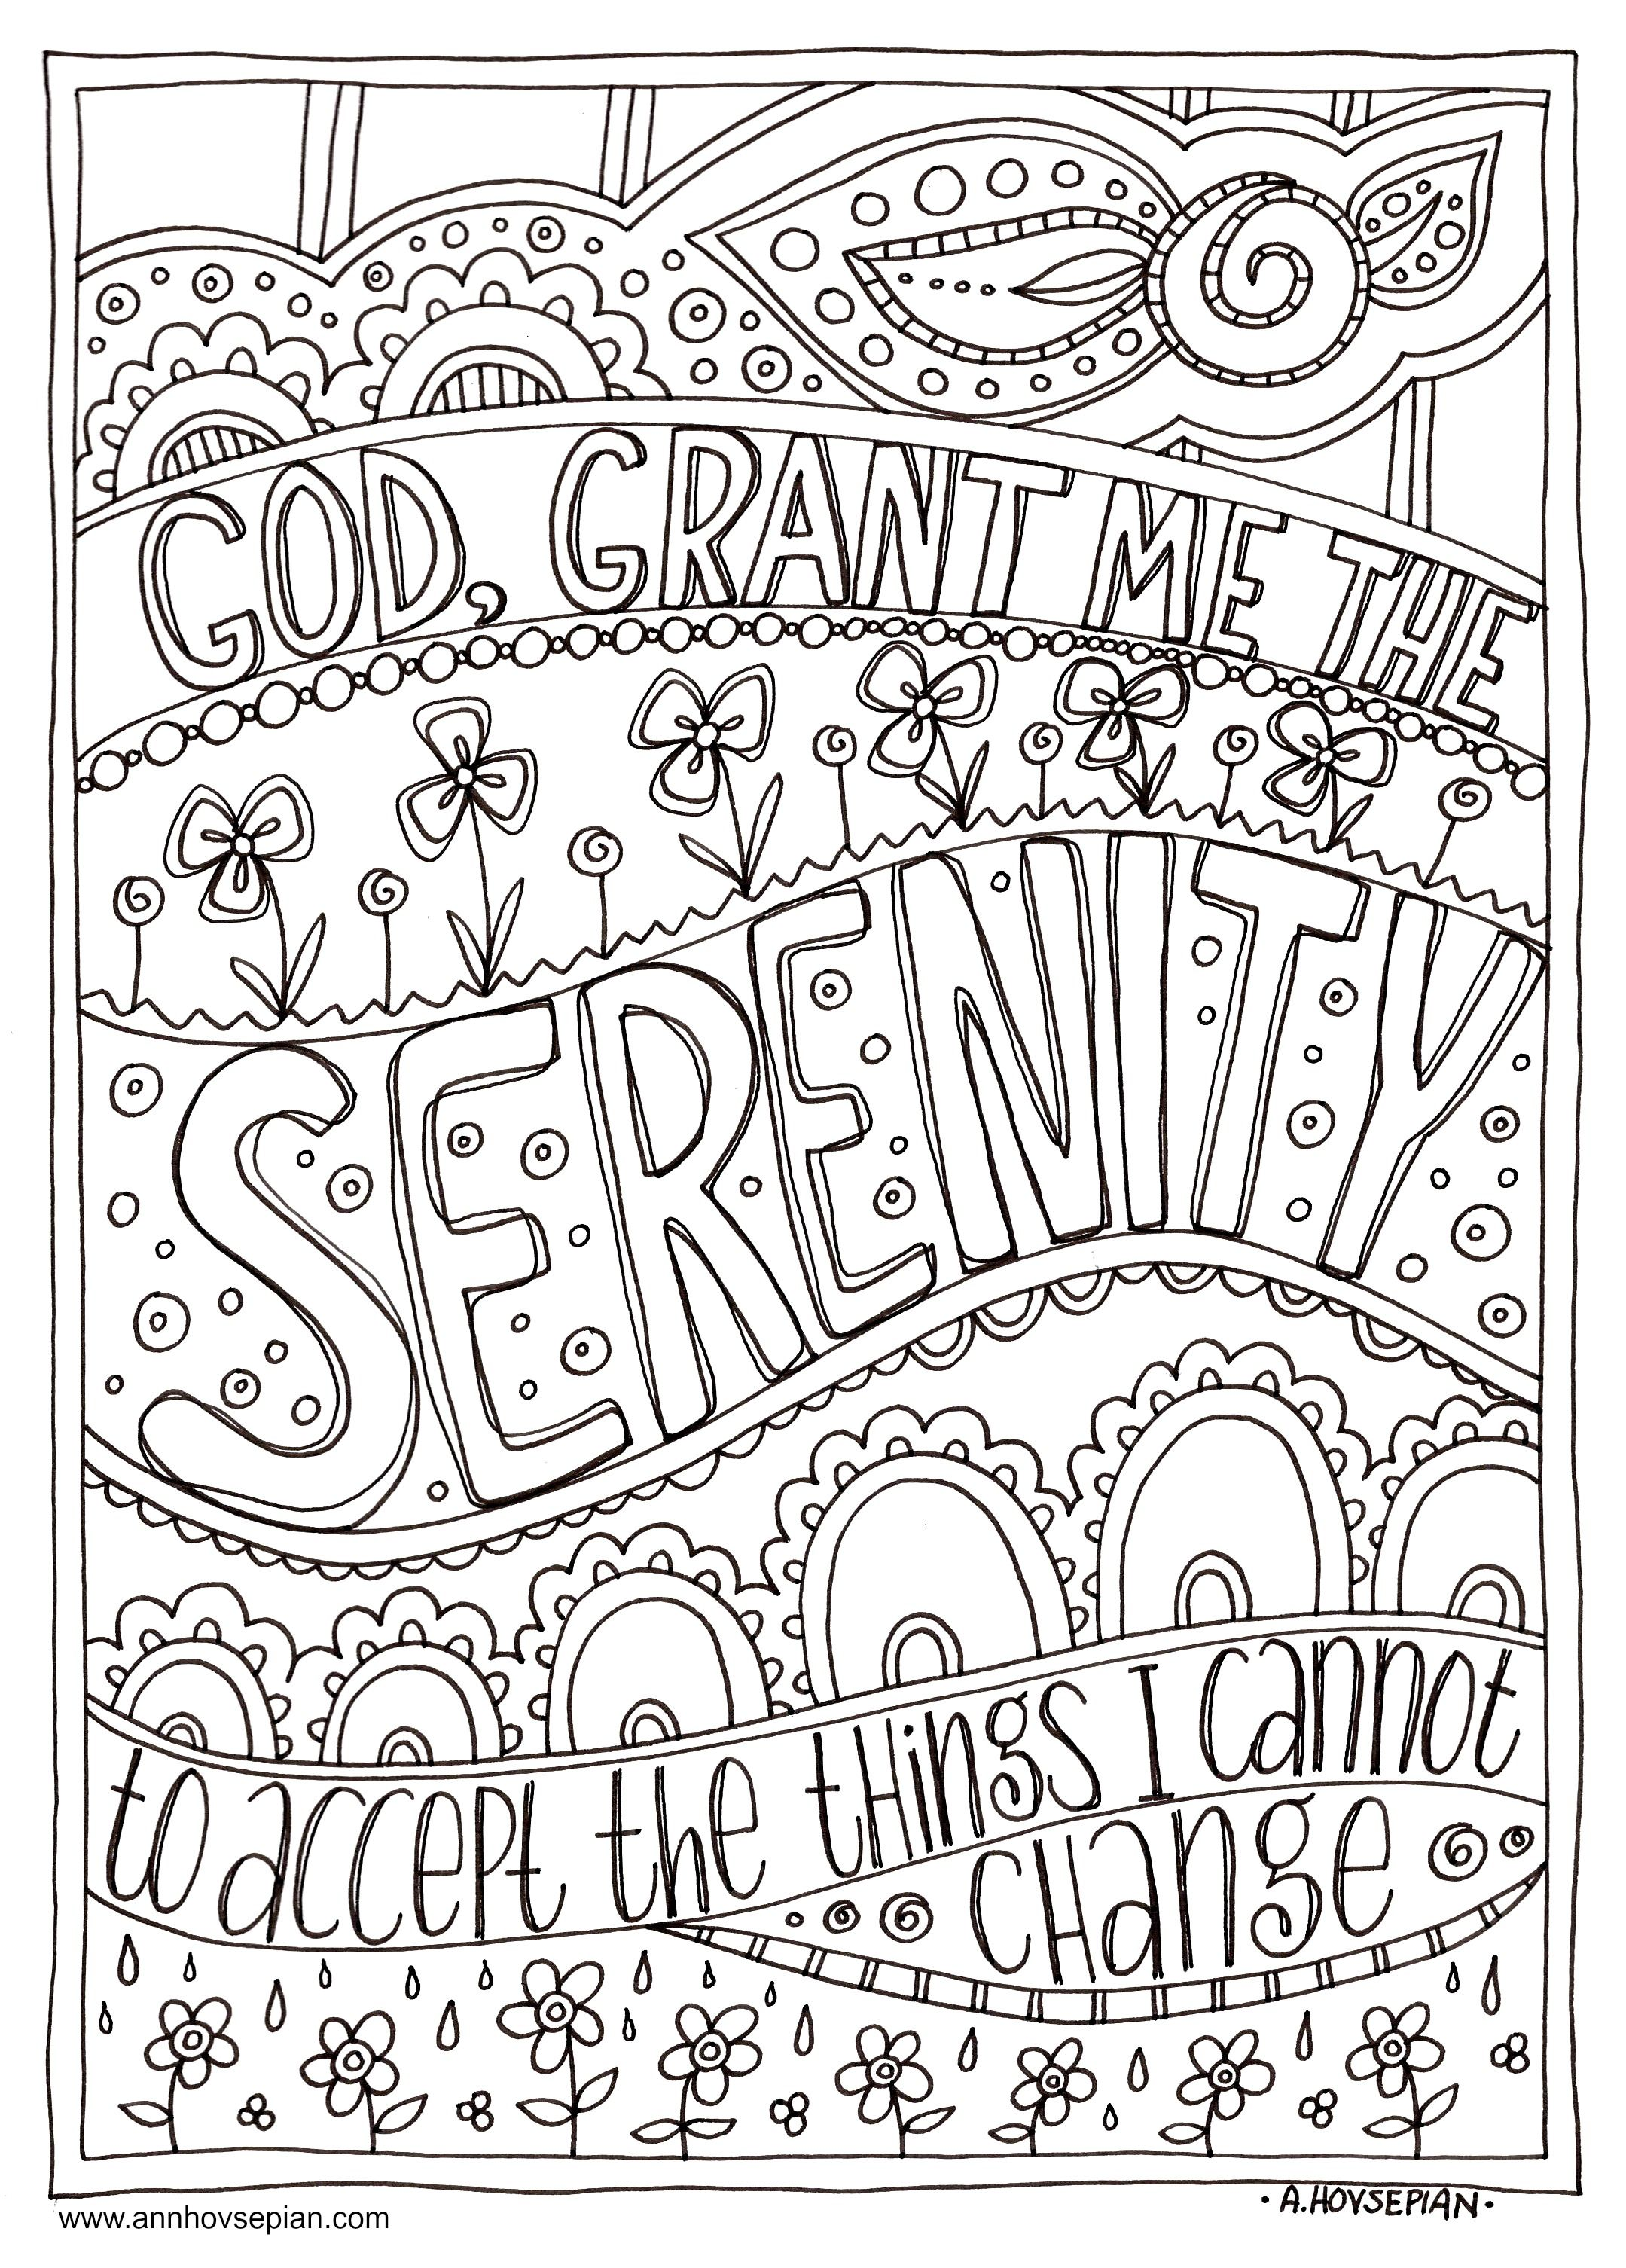 And Colouring Party Is Coming Up On Saturday May 7 Here 39 S A Link To The Event Coloring Pages Inspirational Bible Verse Coloring Bible Coloring Pages